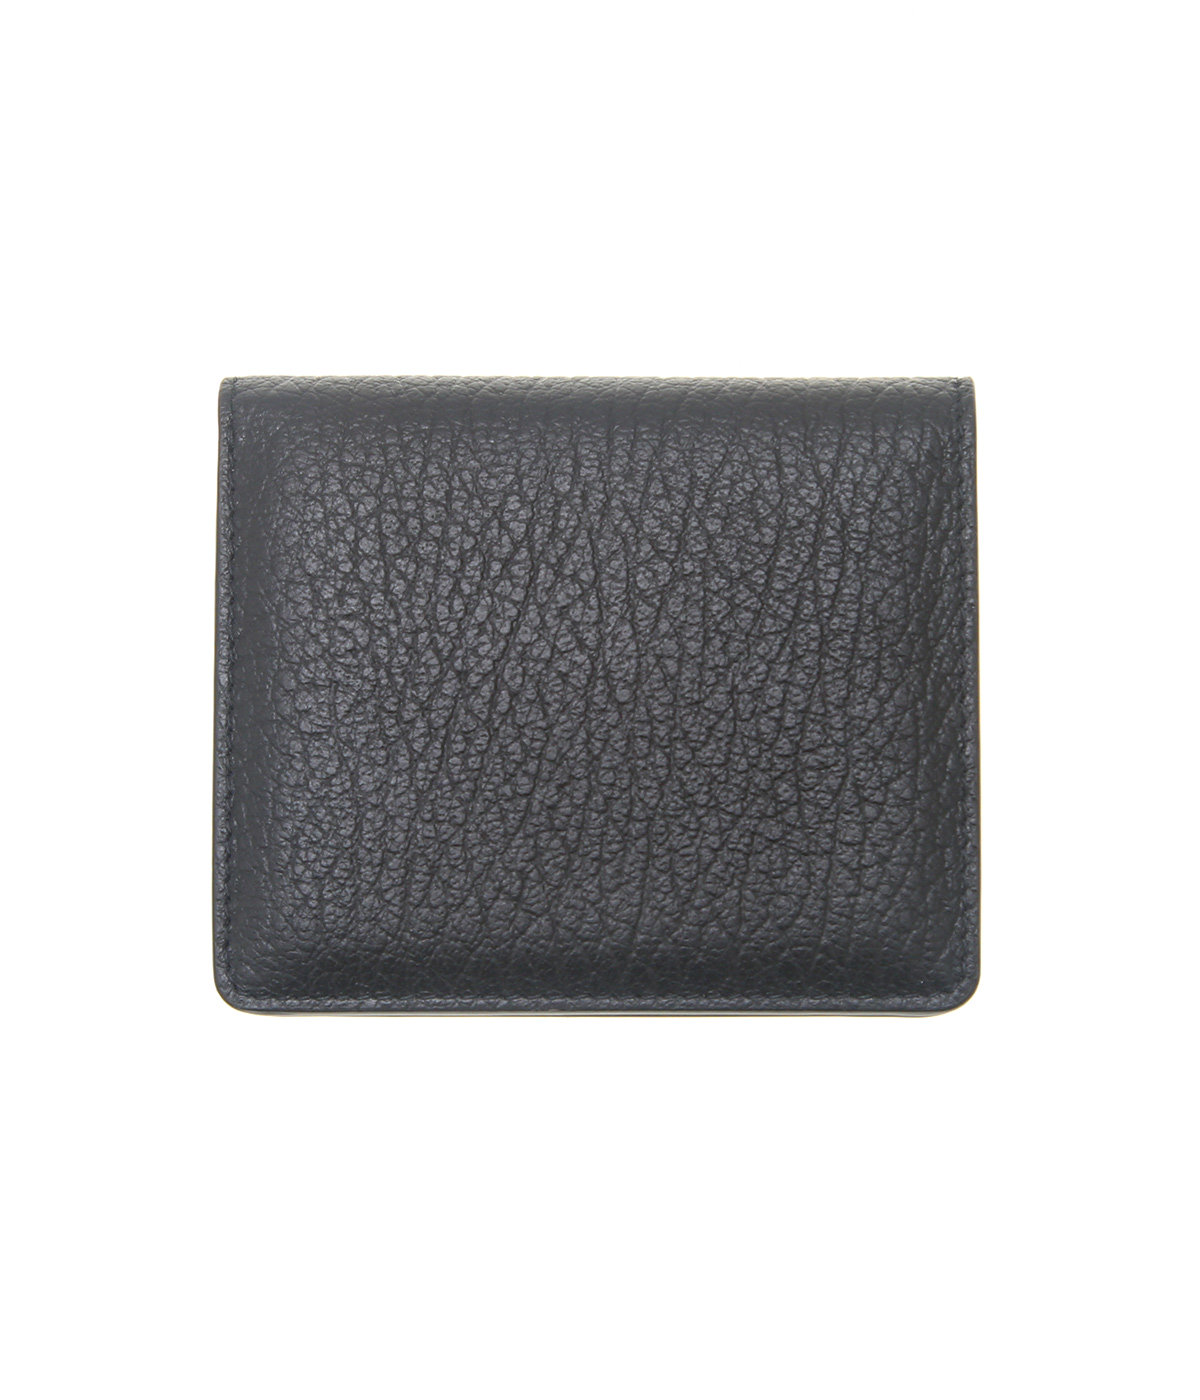 LEATHER WALLET(二つ折り)